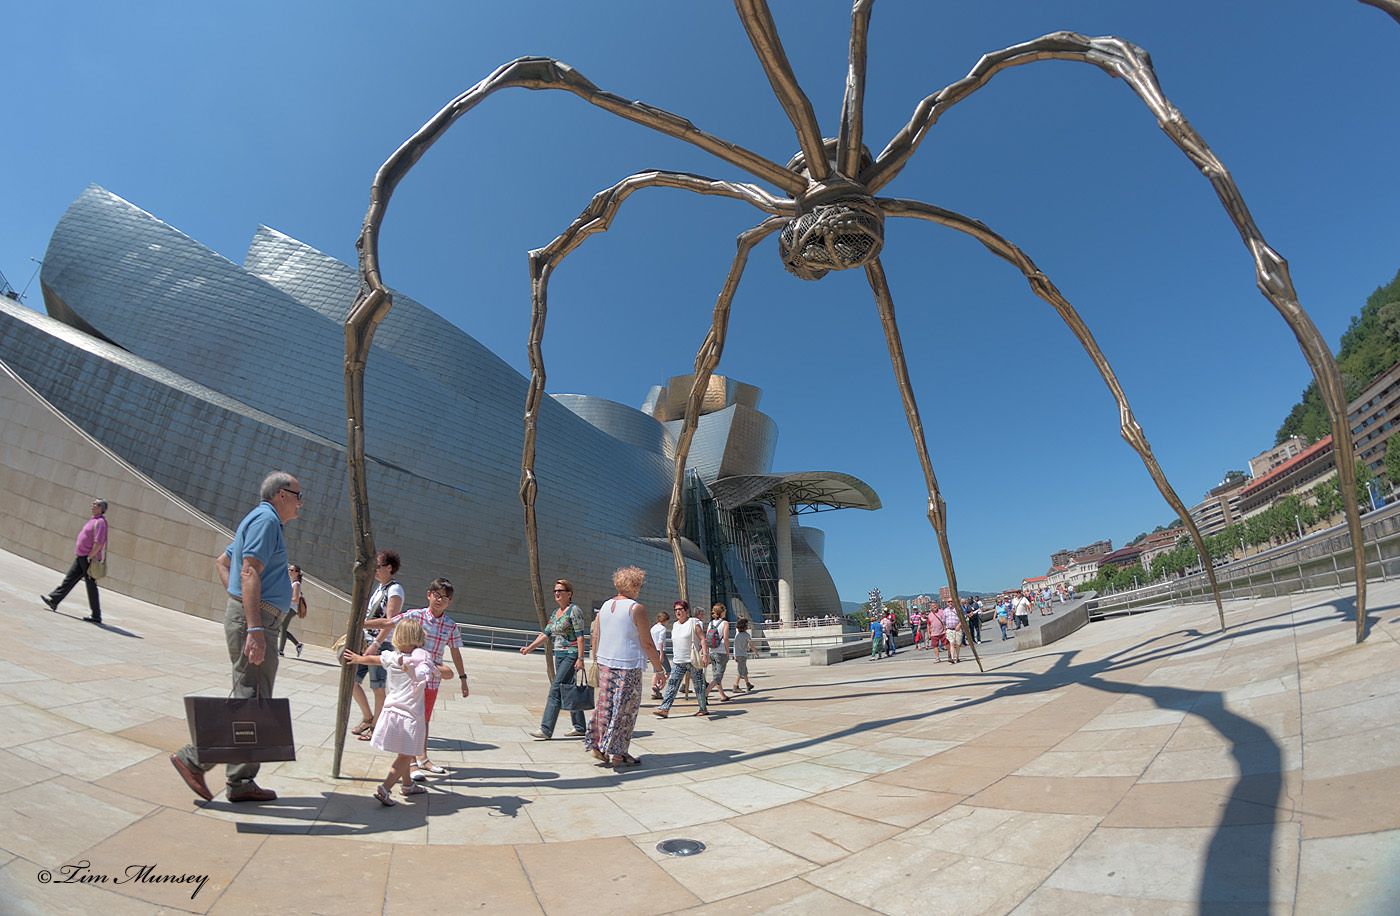 Spider of Bilbao